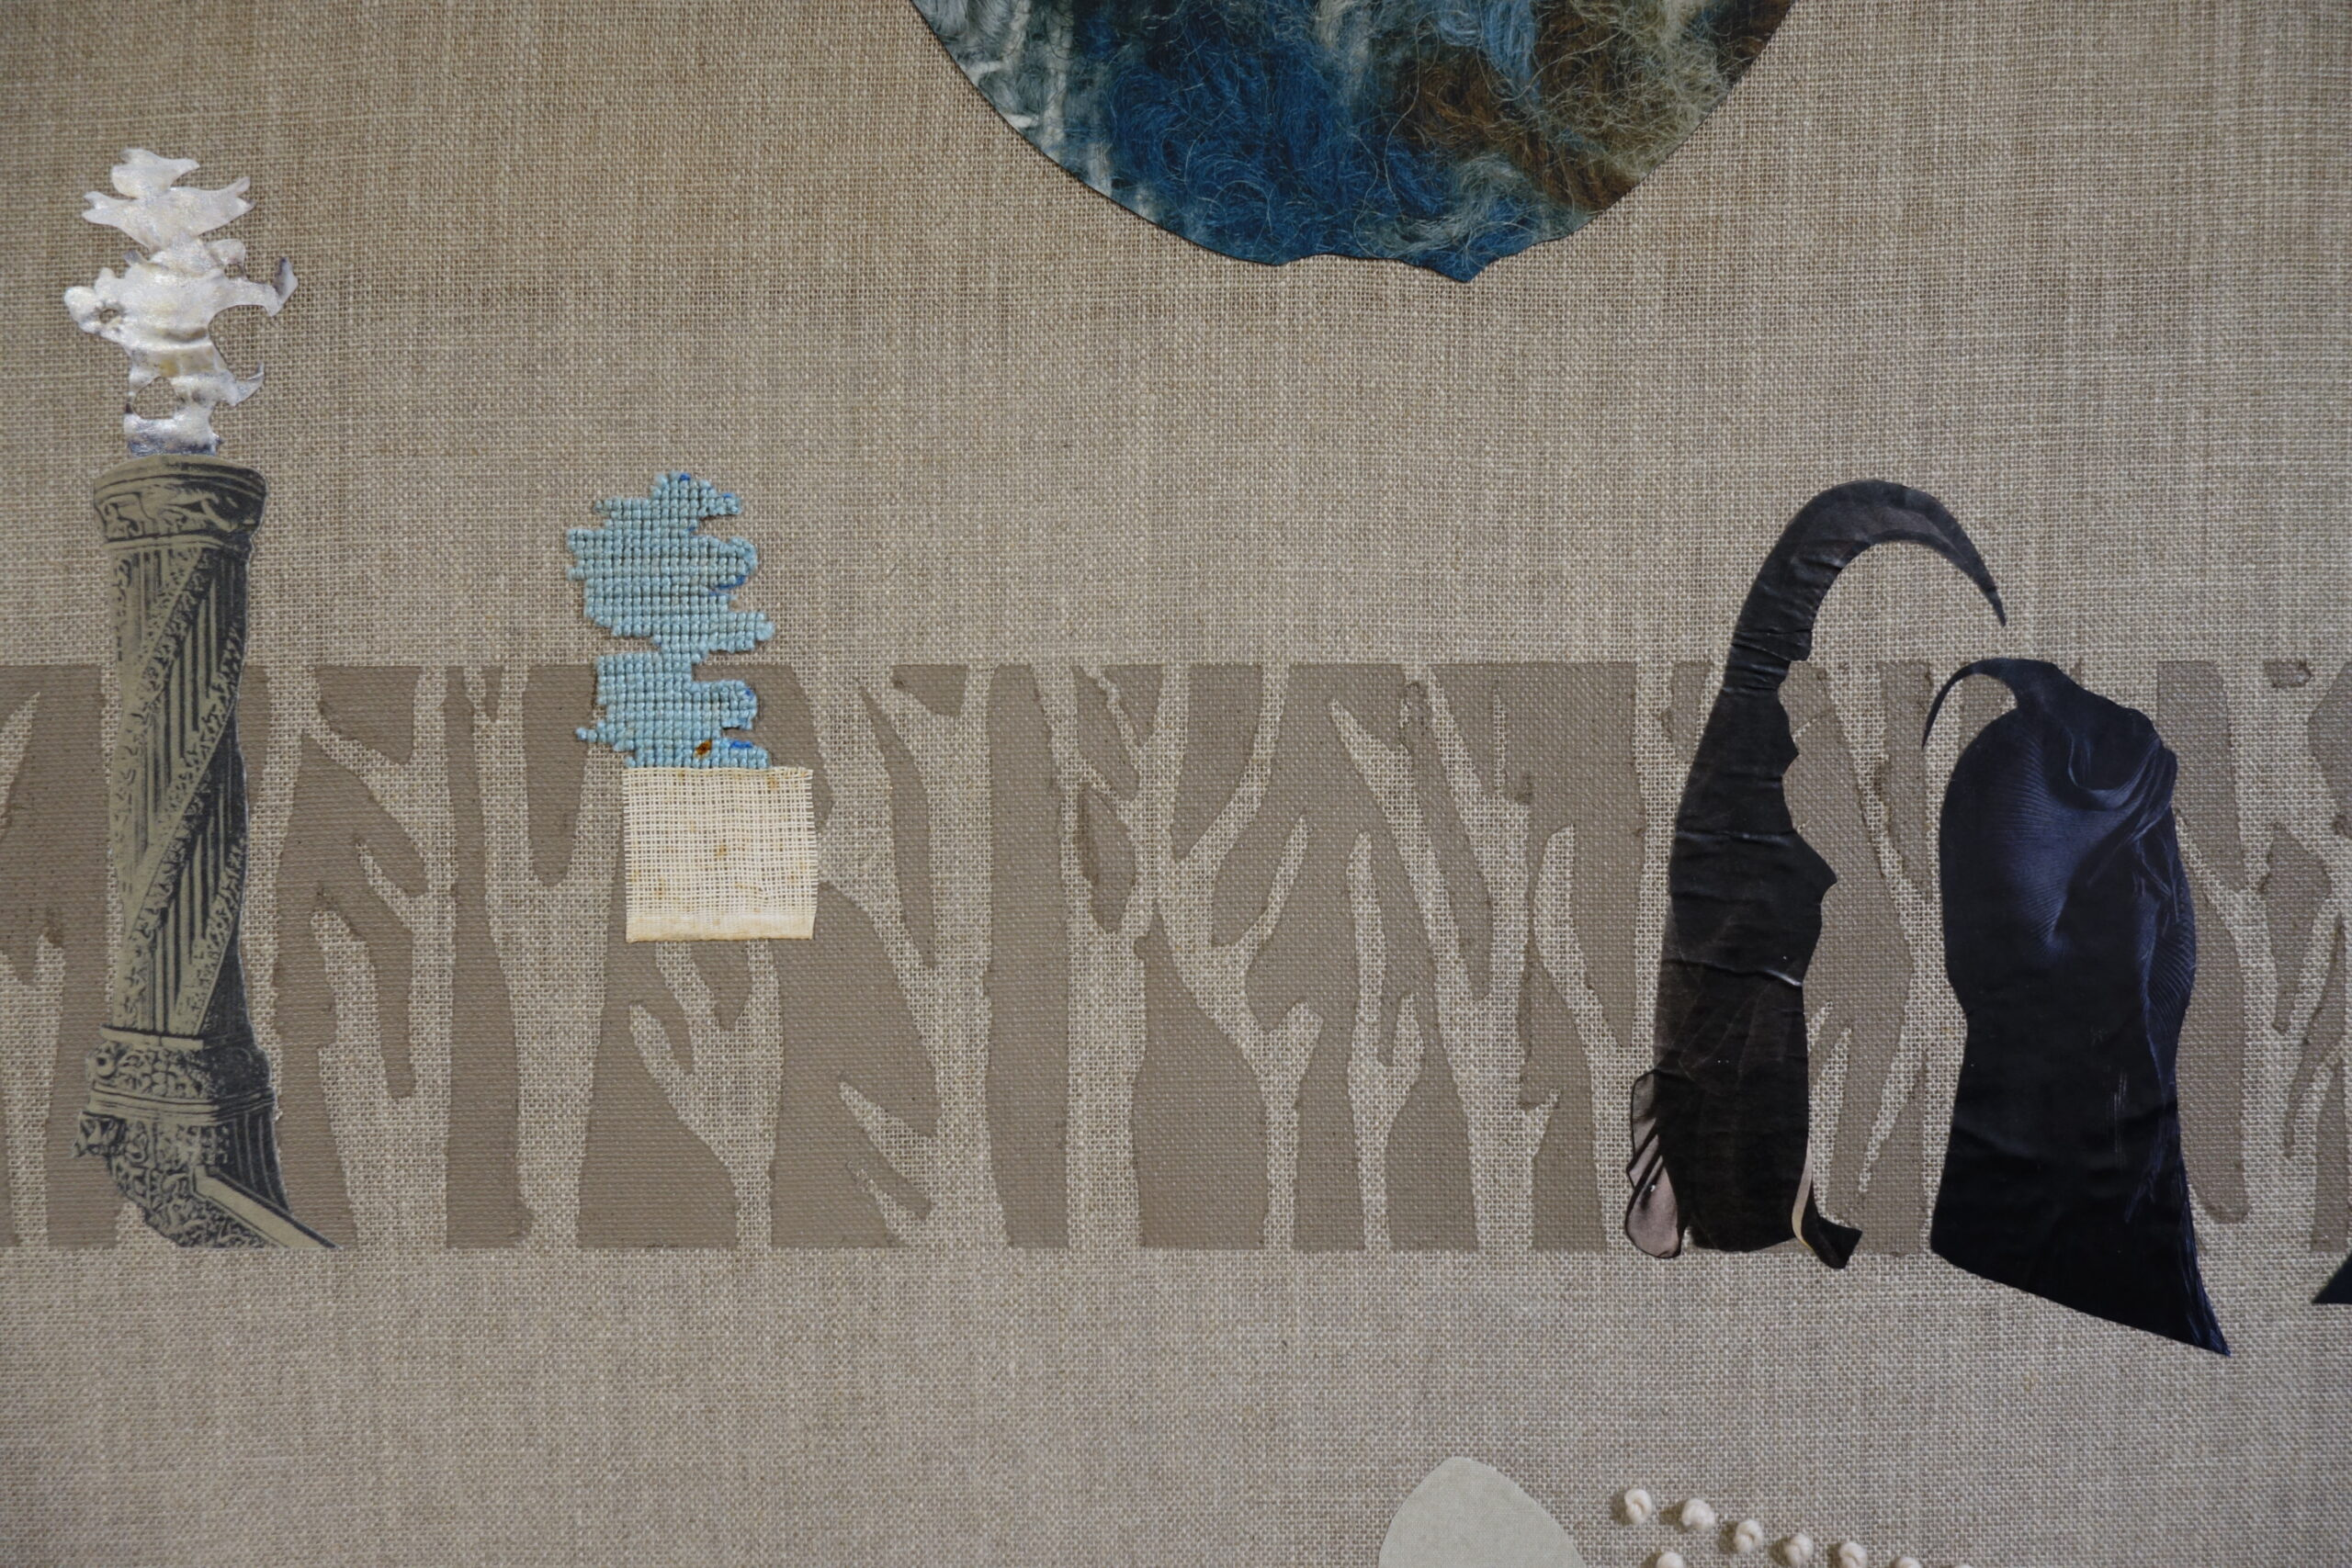 When much had been forgotten: fragments of tapestry, collage and embroidery in the shape of statues and organic forms are scattered across a pale grey-brown linen